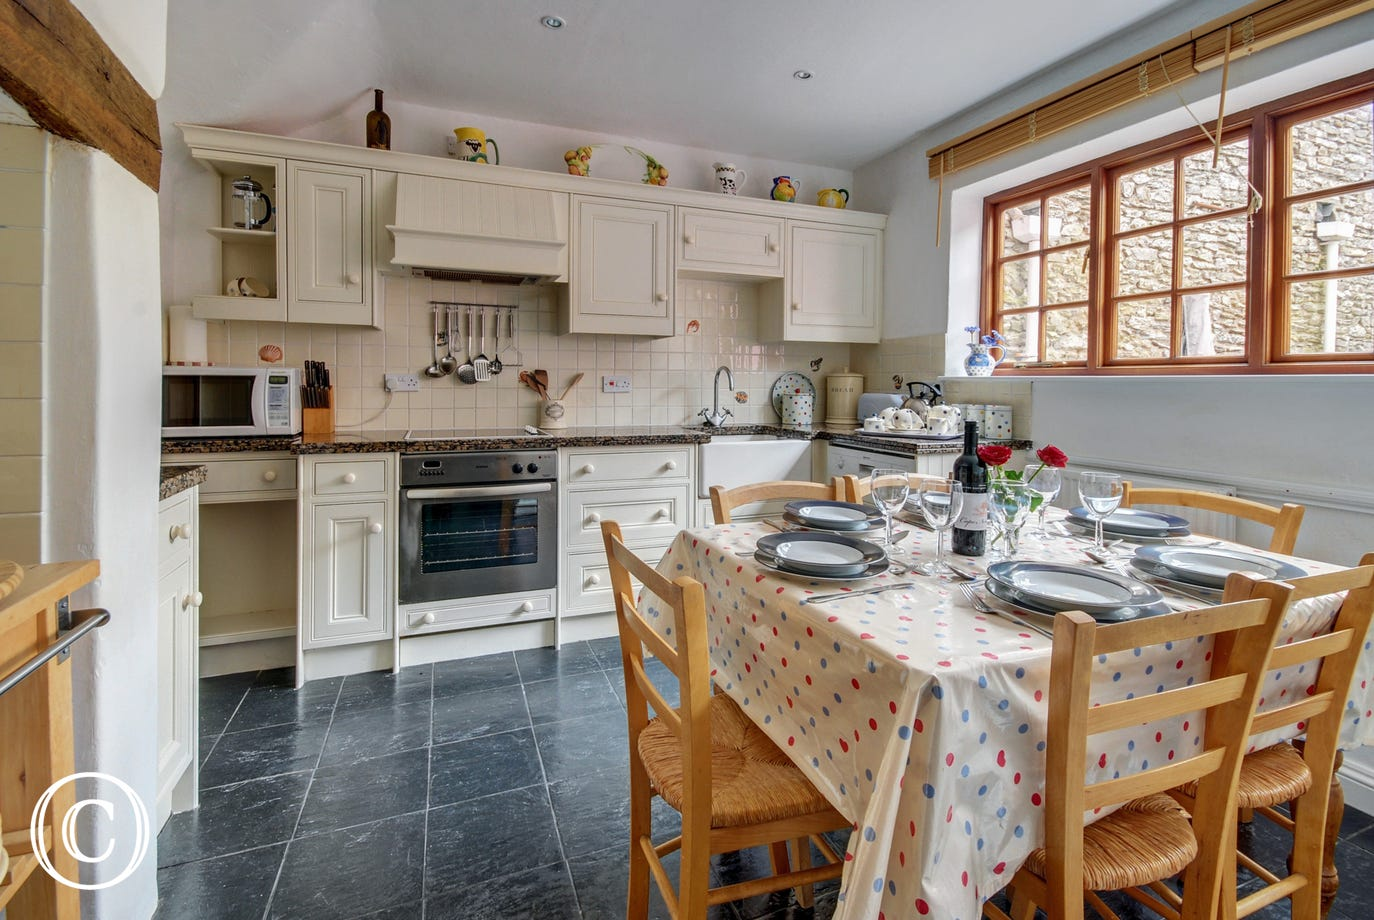 Tiled slate flooring and granite work surfaces create a modern cottage style in the pretty kitchen/breakfast room